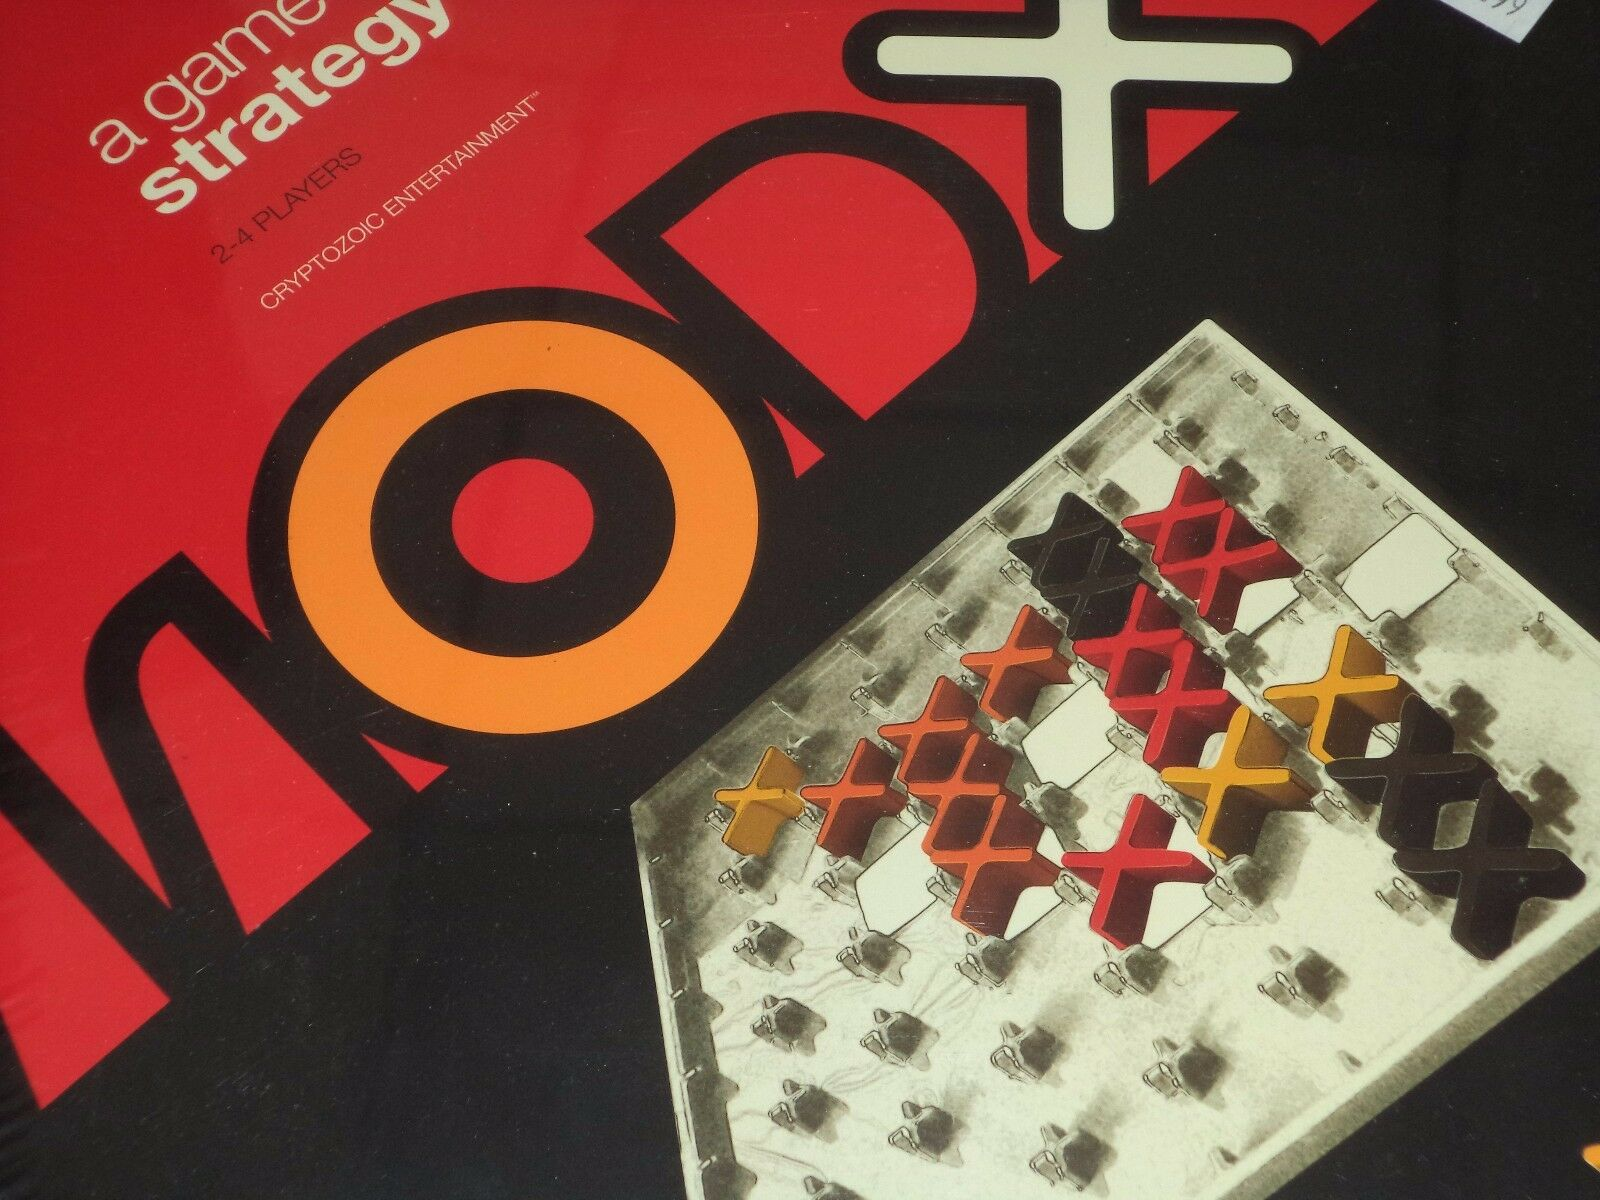 Mod X - Cryptozoic Games Board Game New  Modx